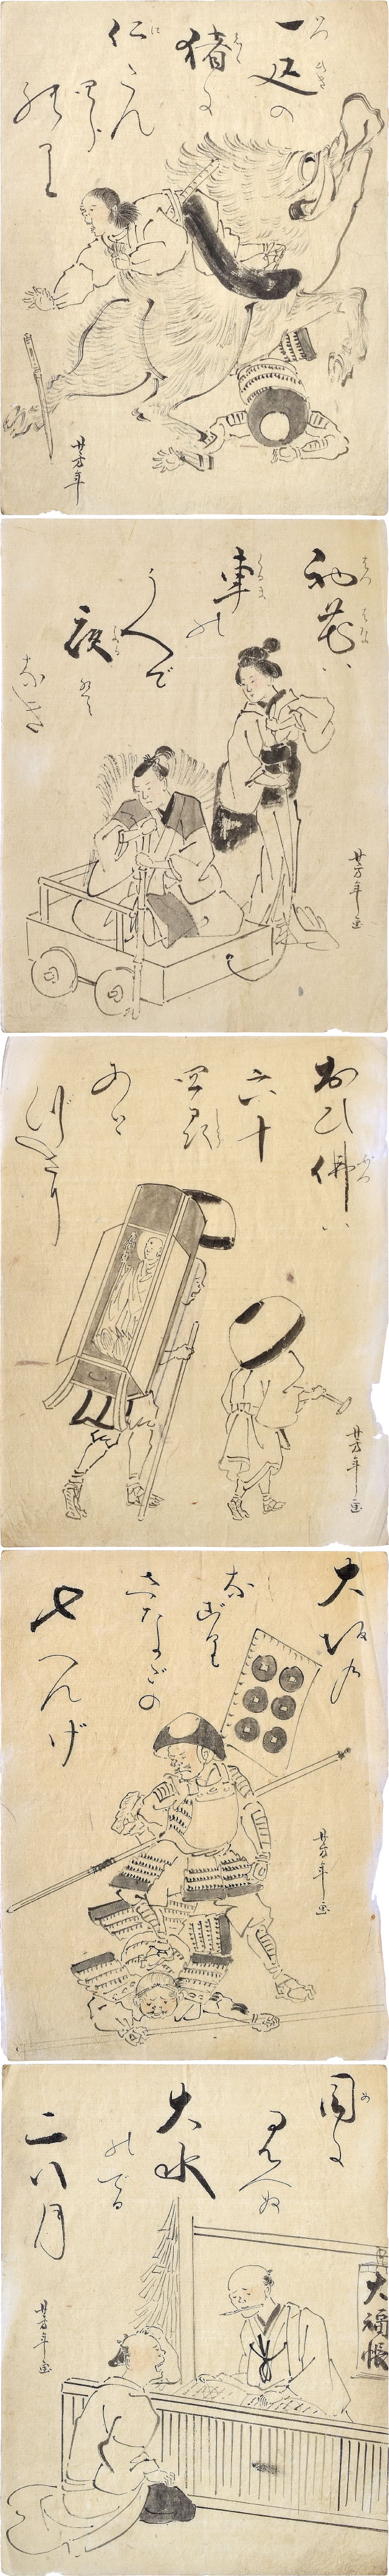 Tsukioka Yoshitoshi Preparatory Drawings with Poems